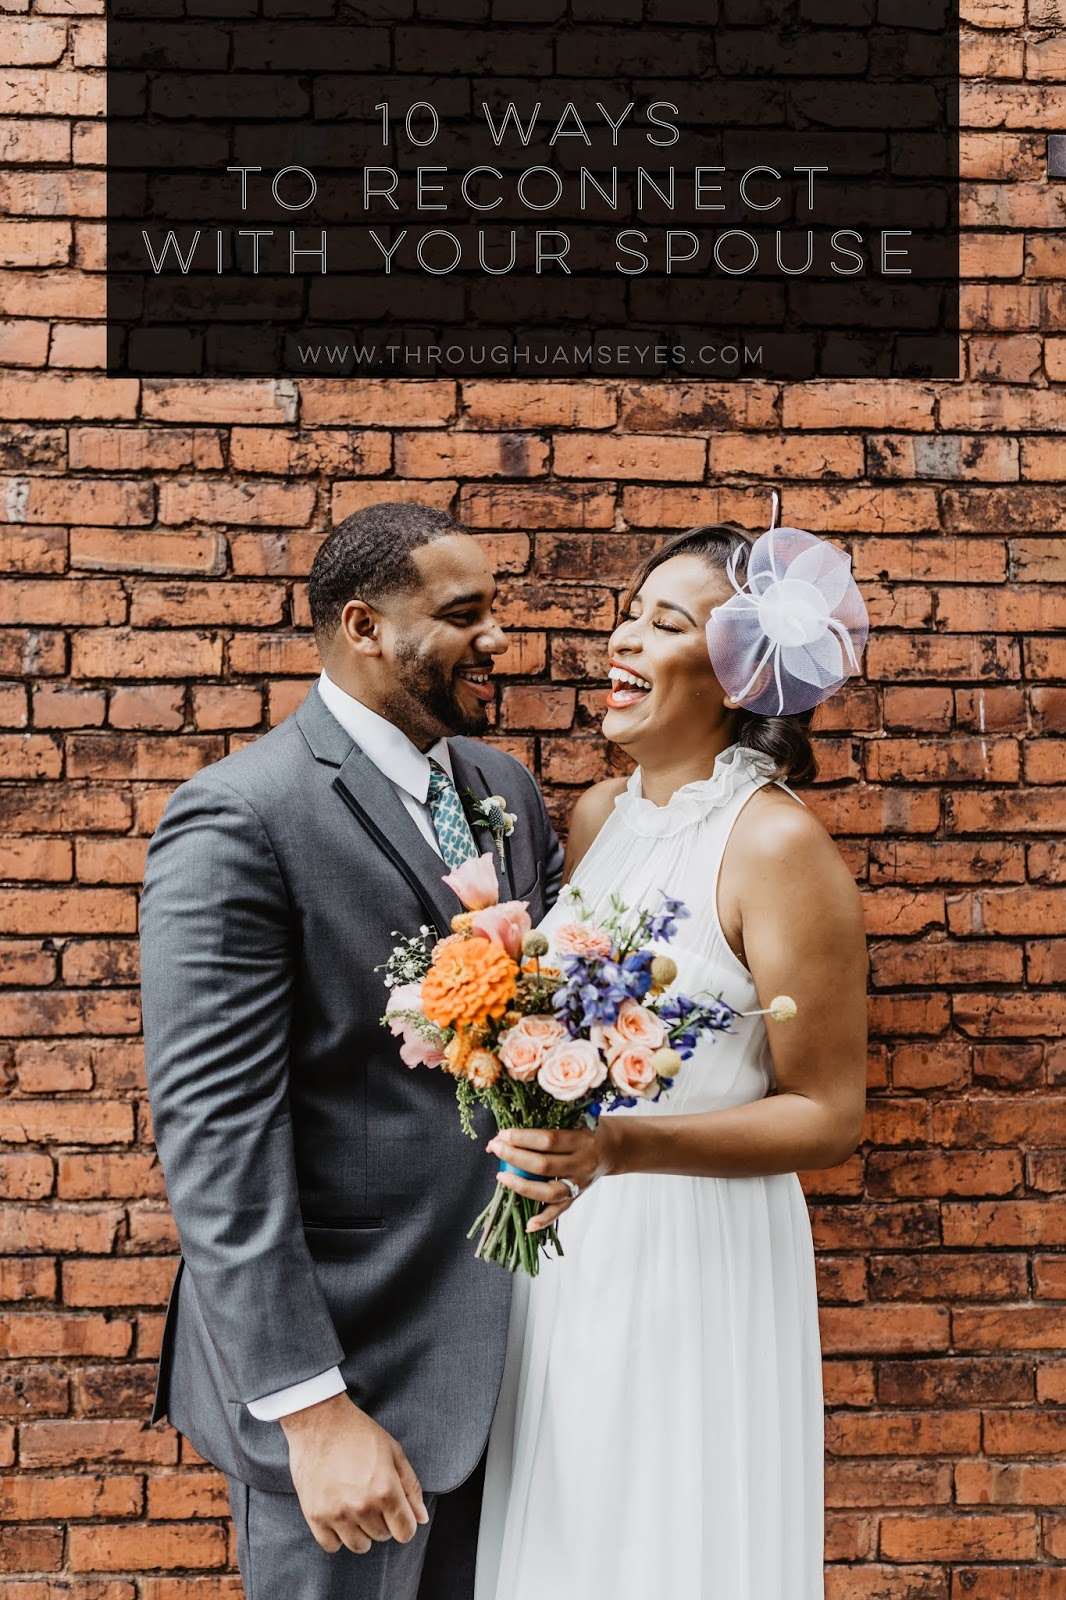 10 Ways to Reconnect With Your Spouse — Through Jams Eyes